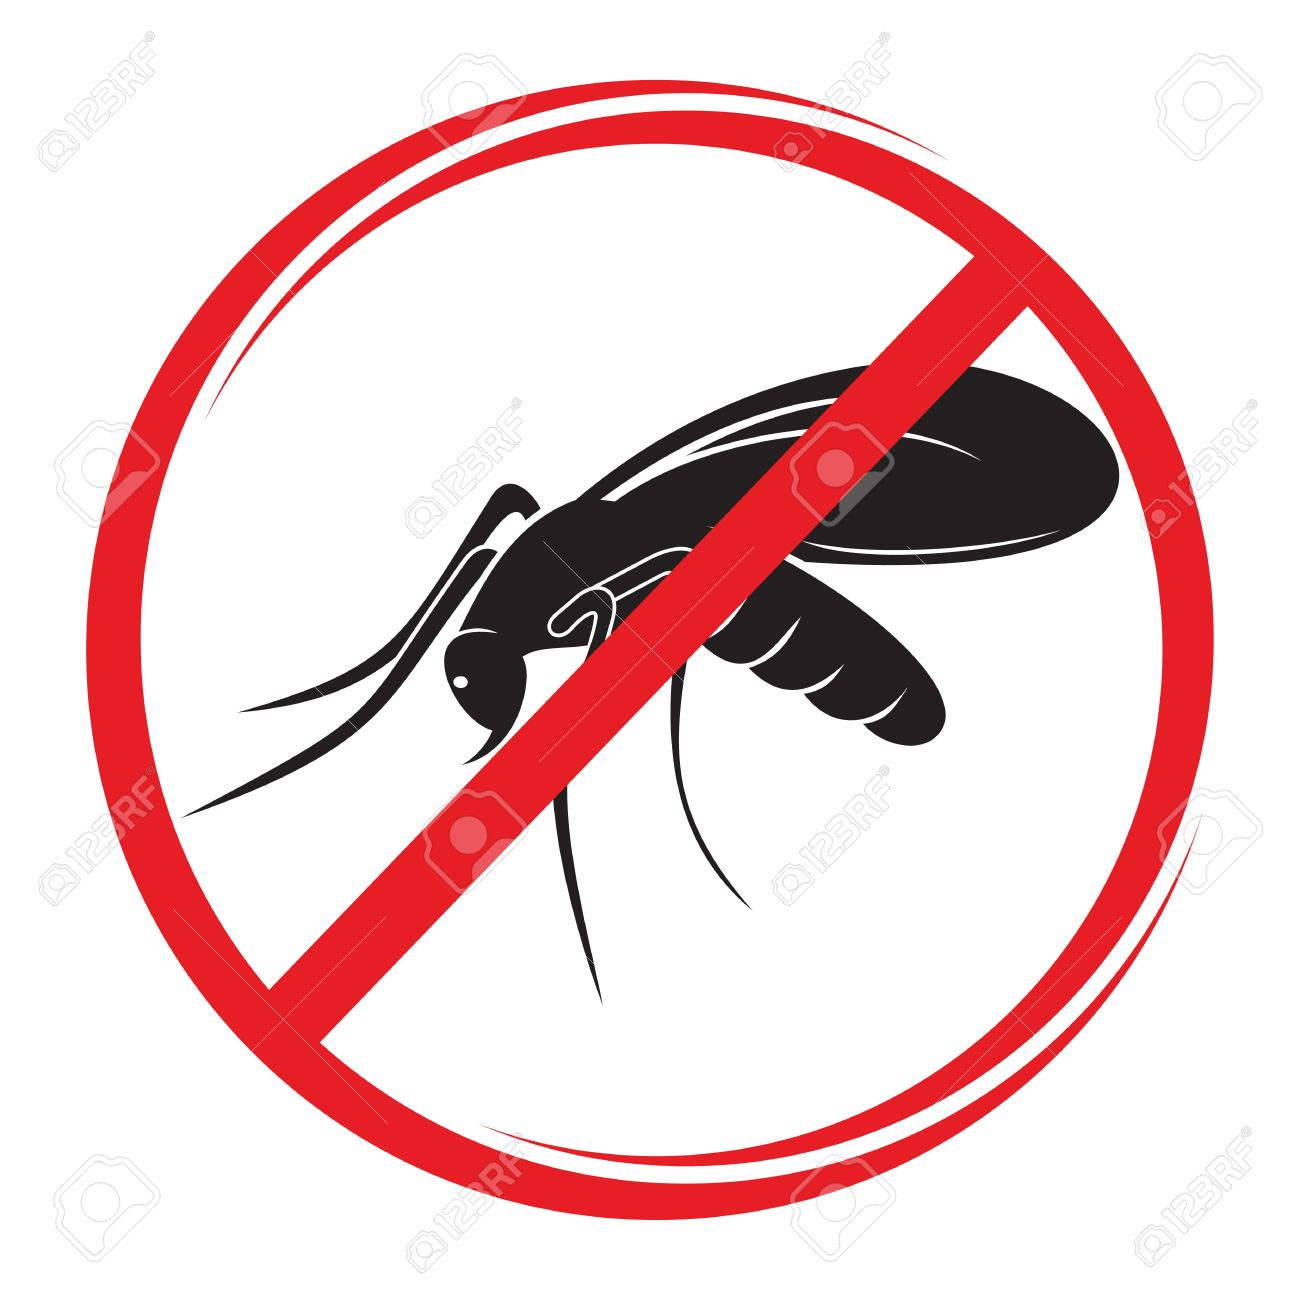 stop mosquito sign Stock Vector - 20504122